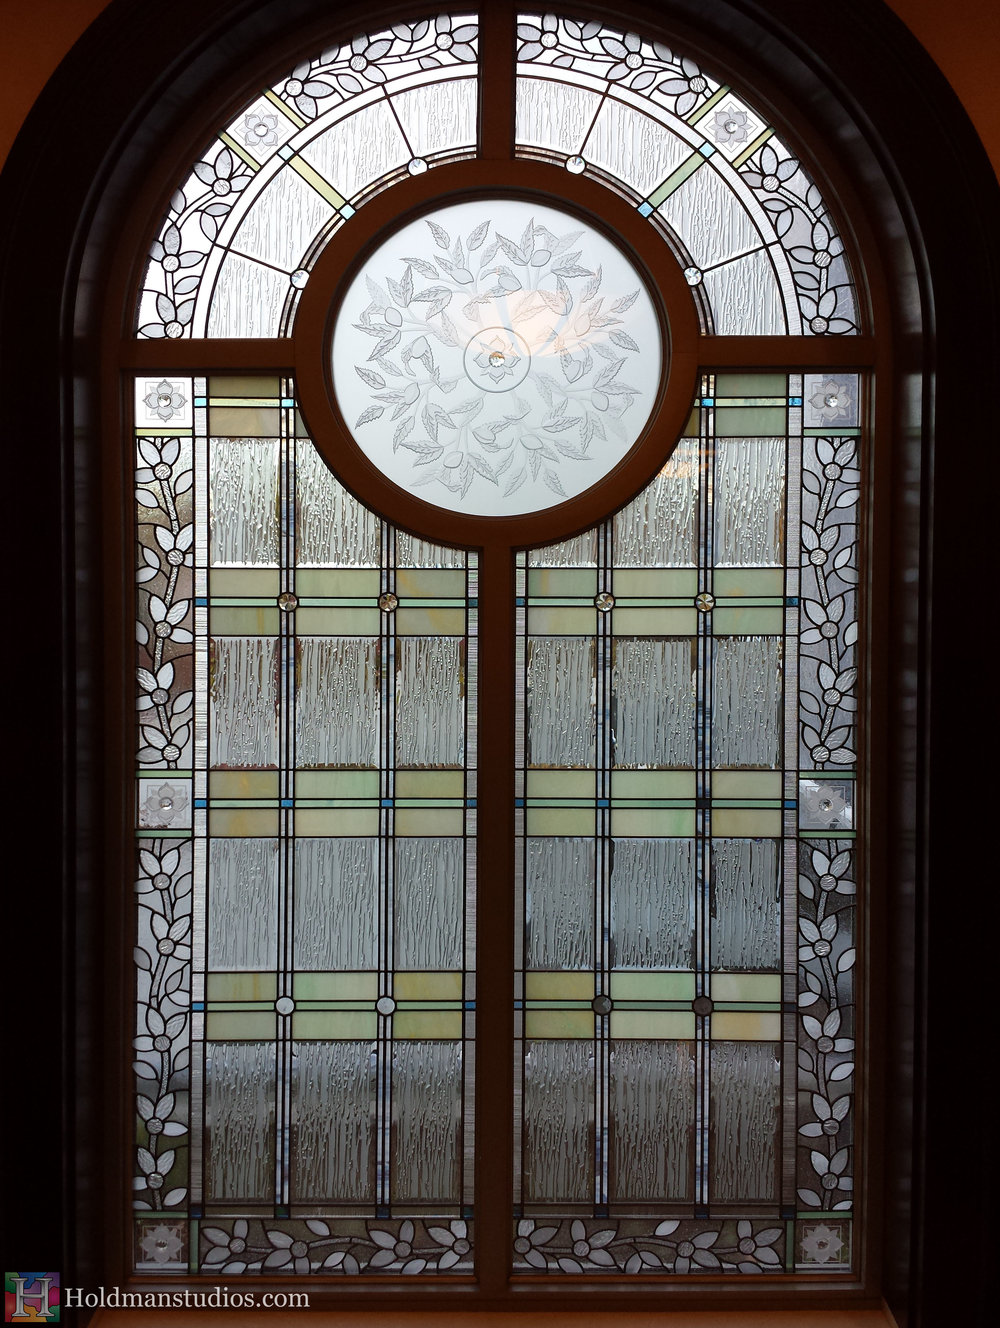 Holdman_Studios_Stained_Art_Glass_LDS_Mormon_Temple_Boise_Idaho_Potato_Flower_Rose_Window.jpg